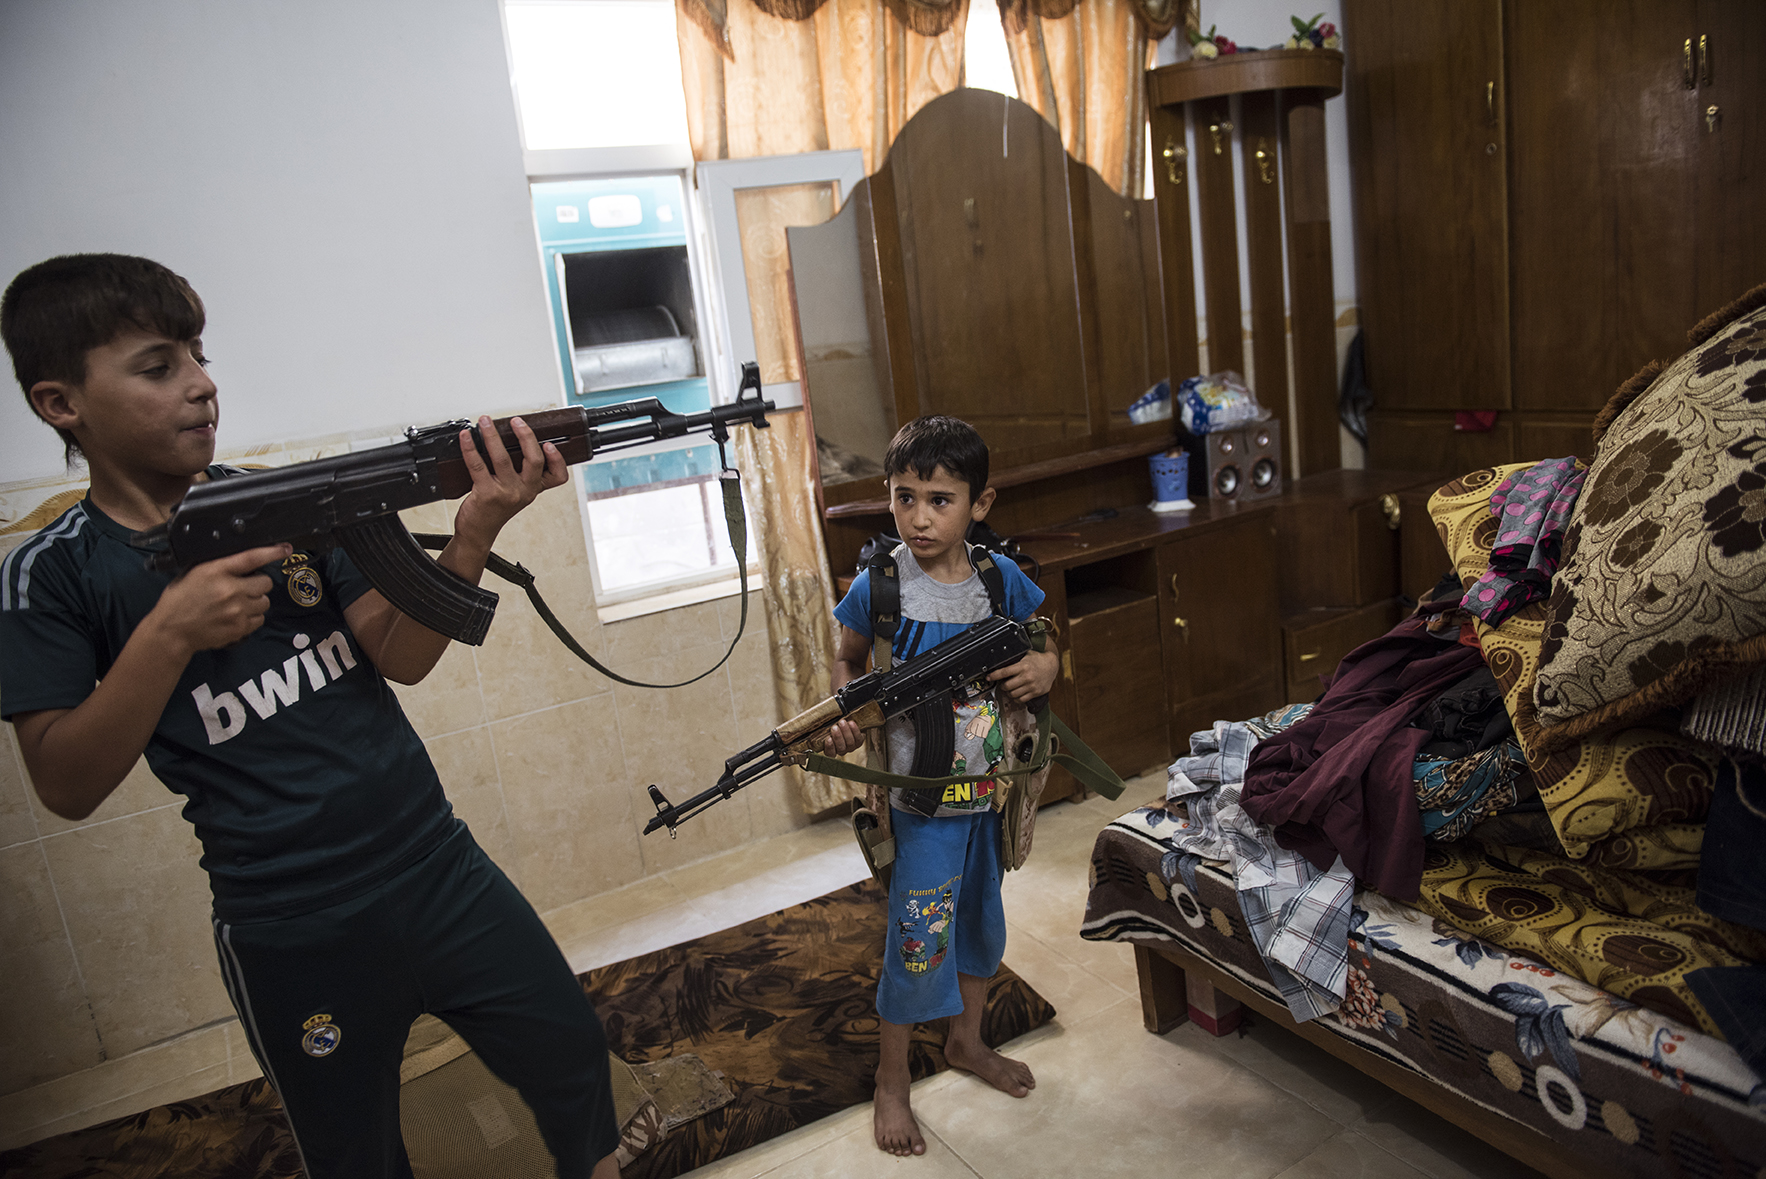 Saleh, 13, and his brother, Bakhtiar, 6, play with the guns and protective gear their father has prepared in case fighters with the Islamic State return to their frontline town of Mahmur, in Northern Iraq, August 15, 2014. Both boys have been taught how to shoot in case they need to help defend the family.   Since IS started making its way across Iraq, and overrunning various towns, hundreds of thousands of Iraqis have been displaced across the country. Mahmur fell to the Islamic State less than two weeks prior, and after the aid of American air strikes, is now back in the hands of the Peshmerga.  Most civilians are gone, and those who remain are vigilant for the potential return of IS fighters at any moment. civilian population is all but gone.